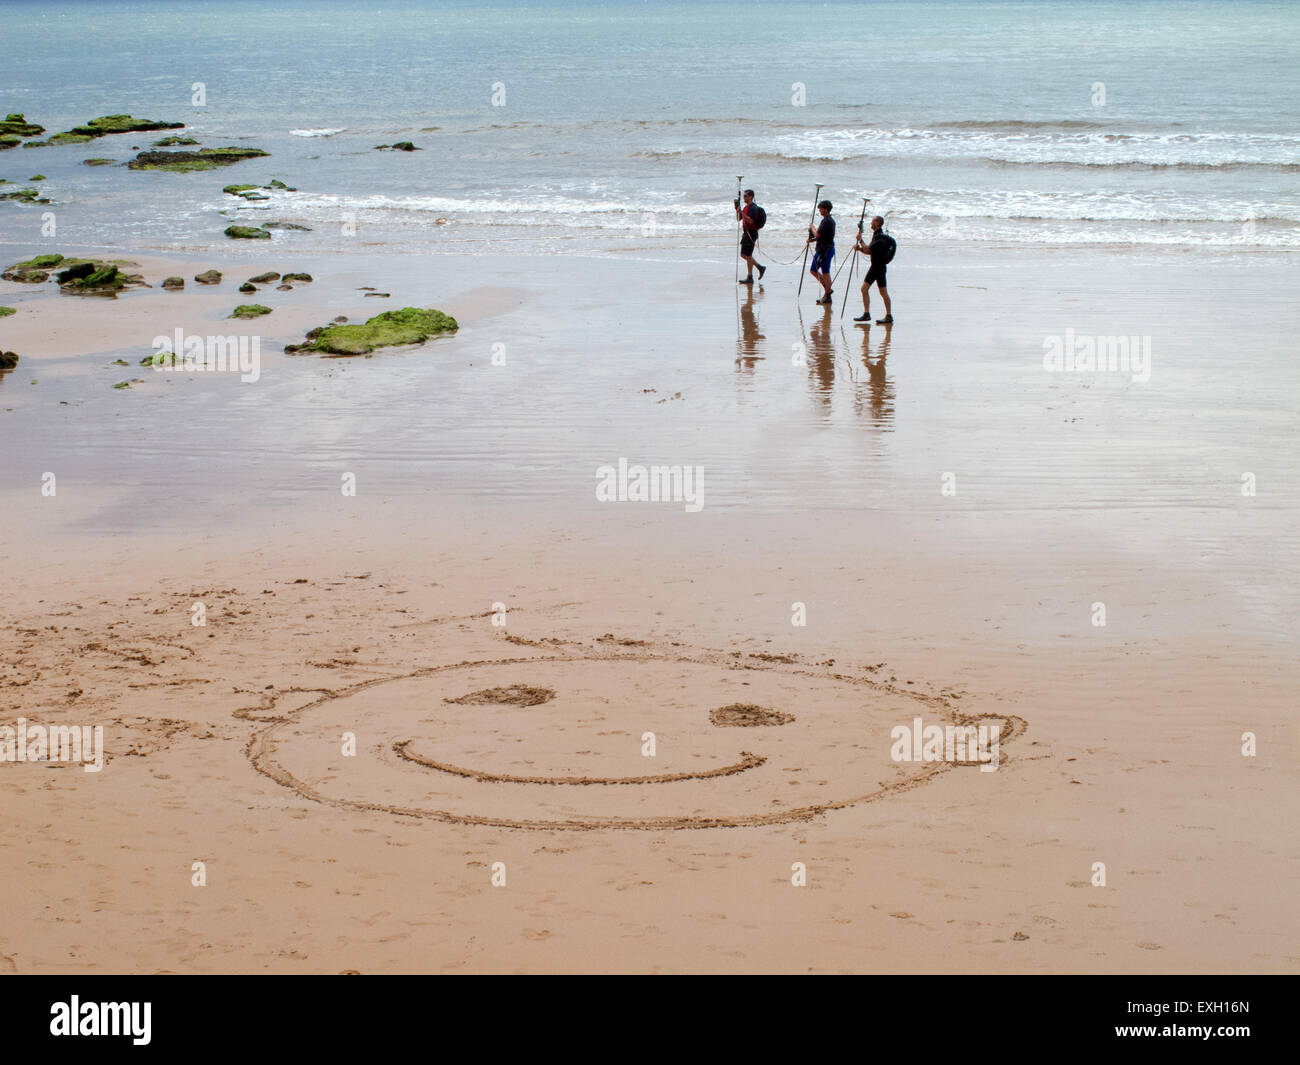 Sidmouth. A smiley face in the sand greets visitors to the beach beneath Jacobs Ladder, at Sidmouth, Devon. Stock Photo